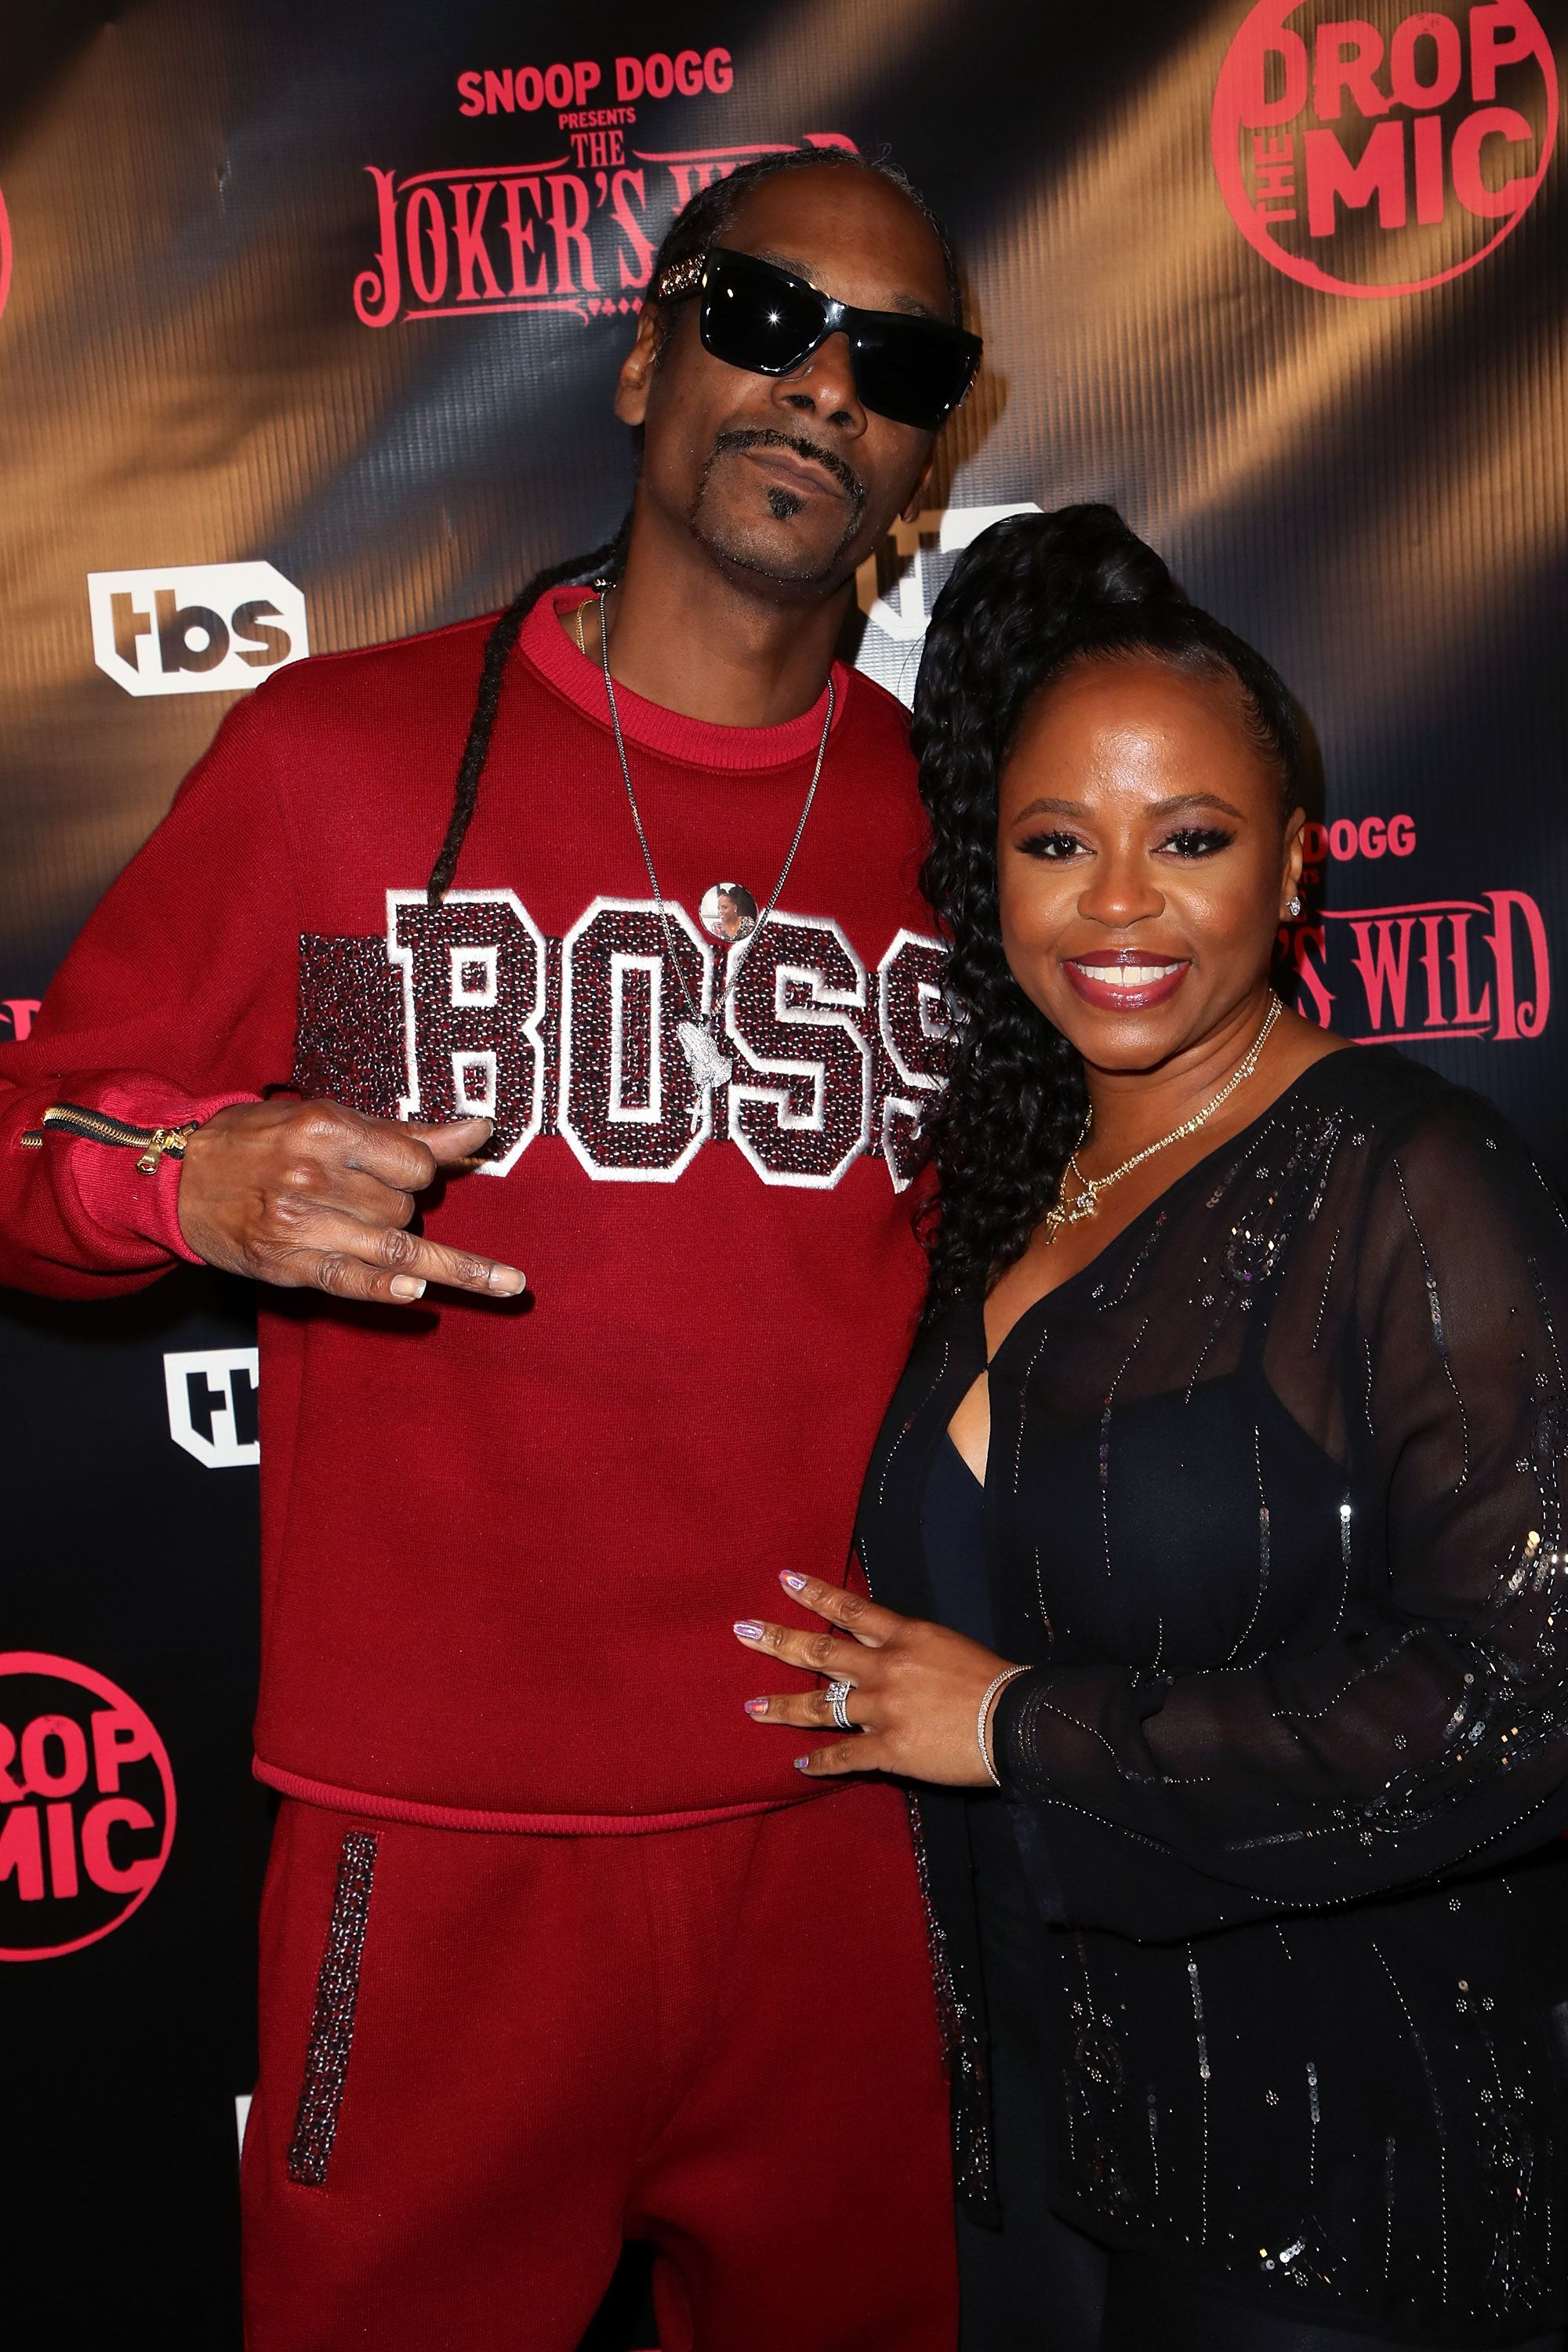 """Snoop Dogg and wife Shante Broadus attend the premiere for TBS's """"Drop The Mic"""" and """"The Joker's Wild"""" on October 11, 2017 in Los Angeles, California. 